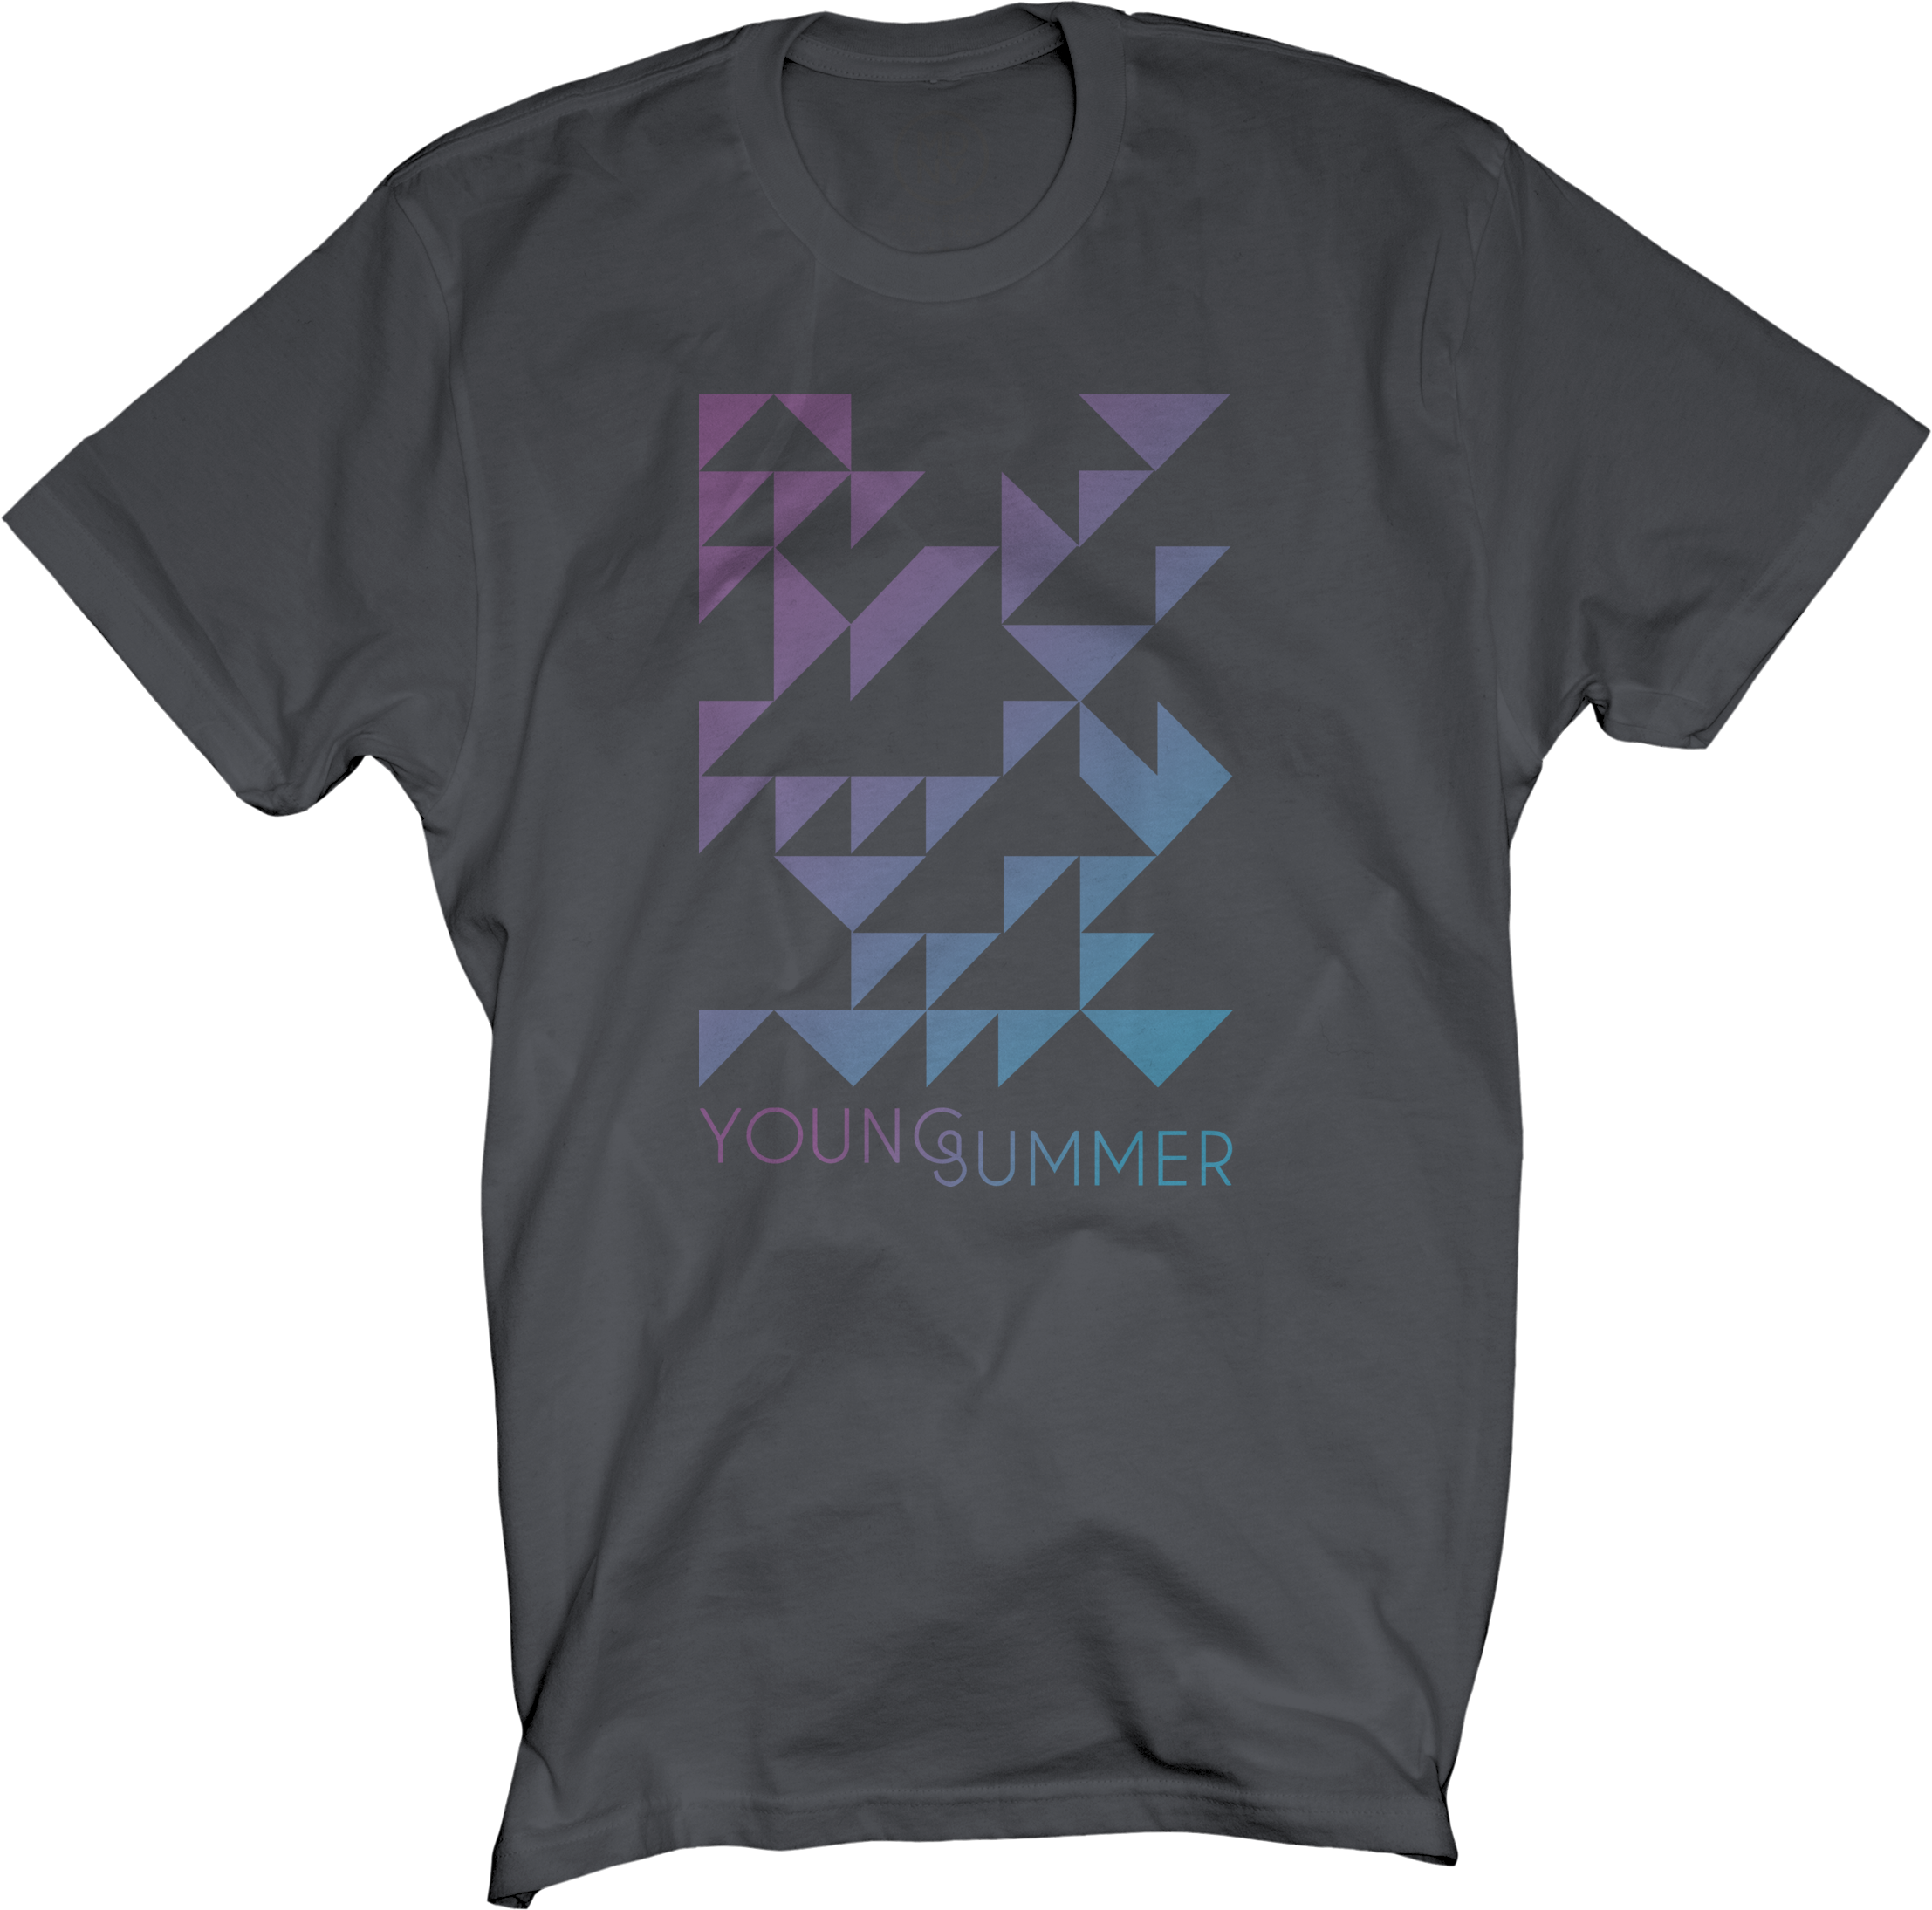 Charcoal Unisex Young Summer Tee